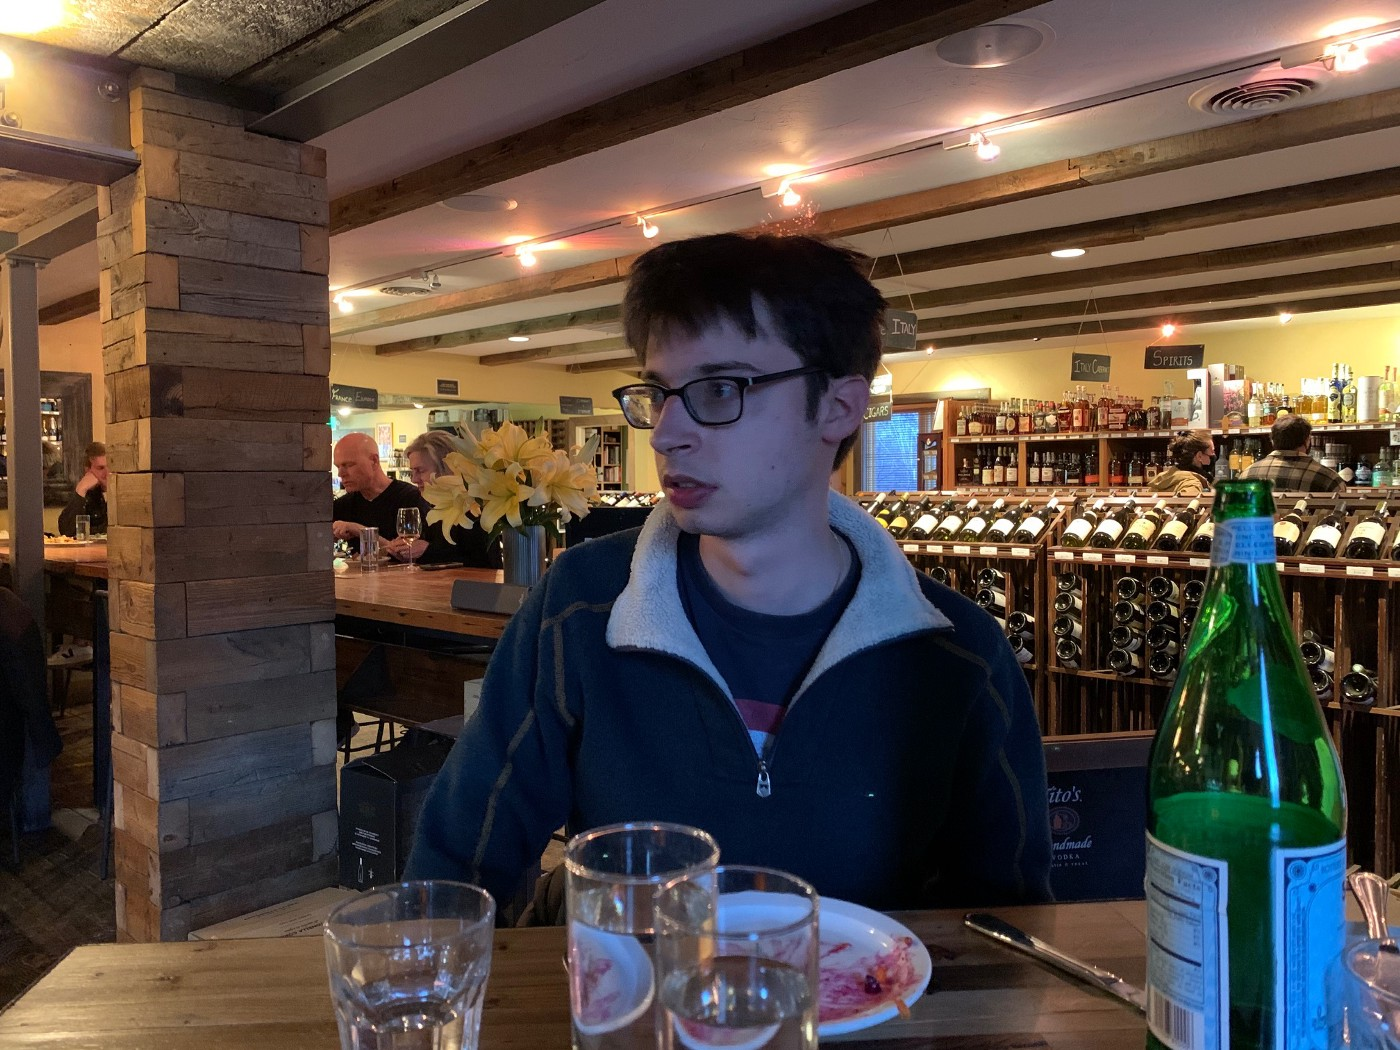 Young man at restaurant